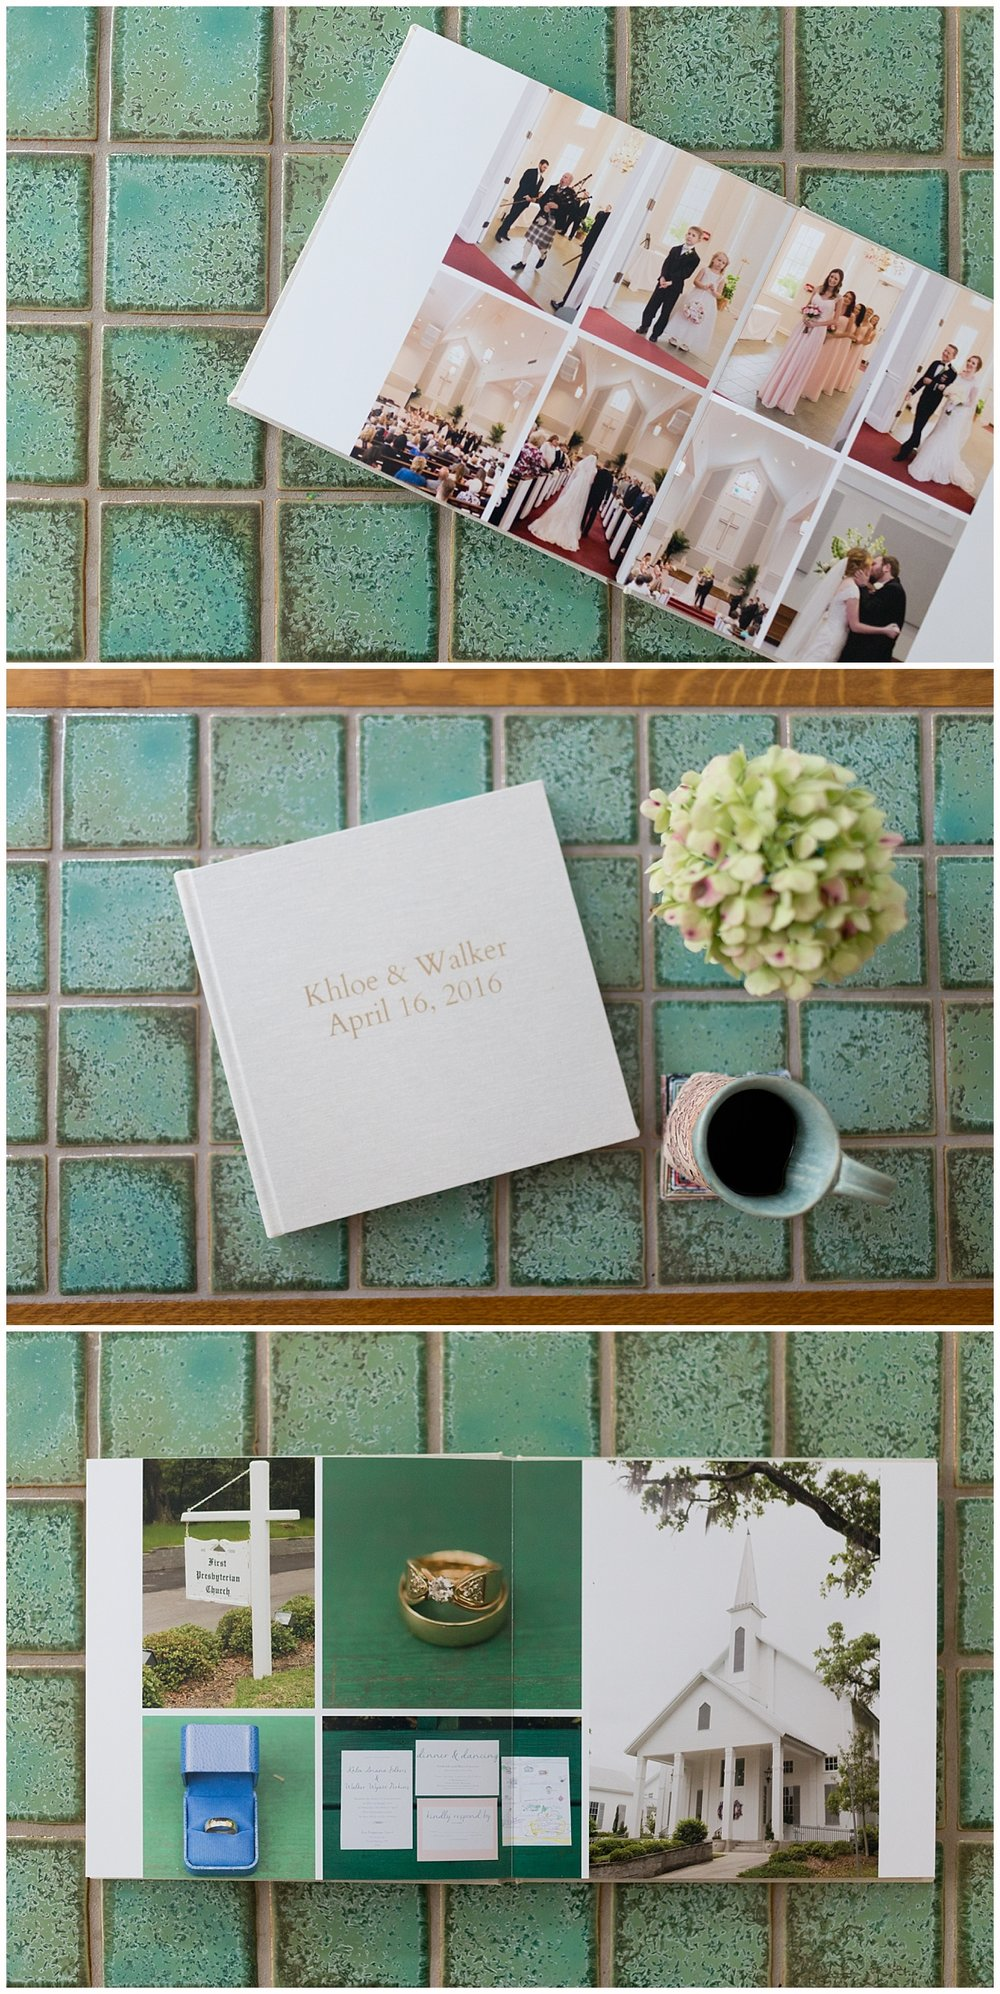 wedding photo album on coffee table - Ocean Springs wedding photography album